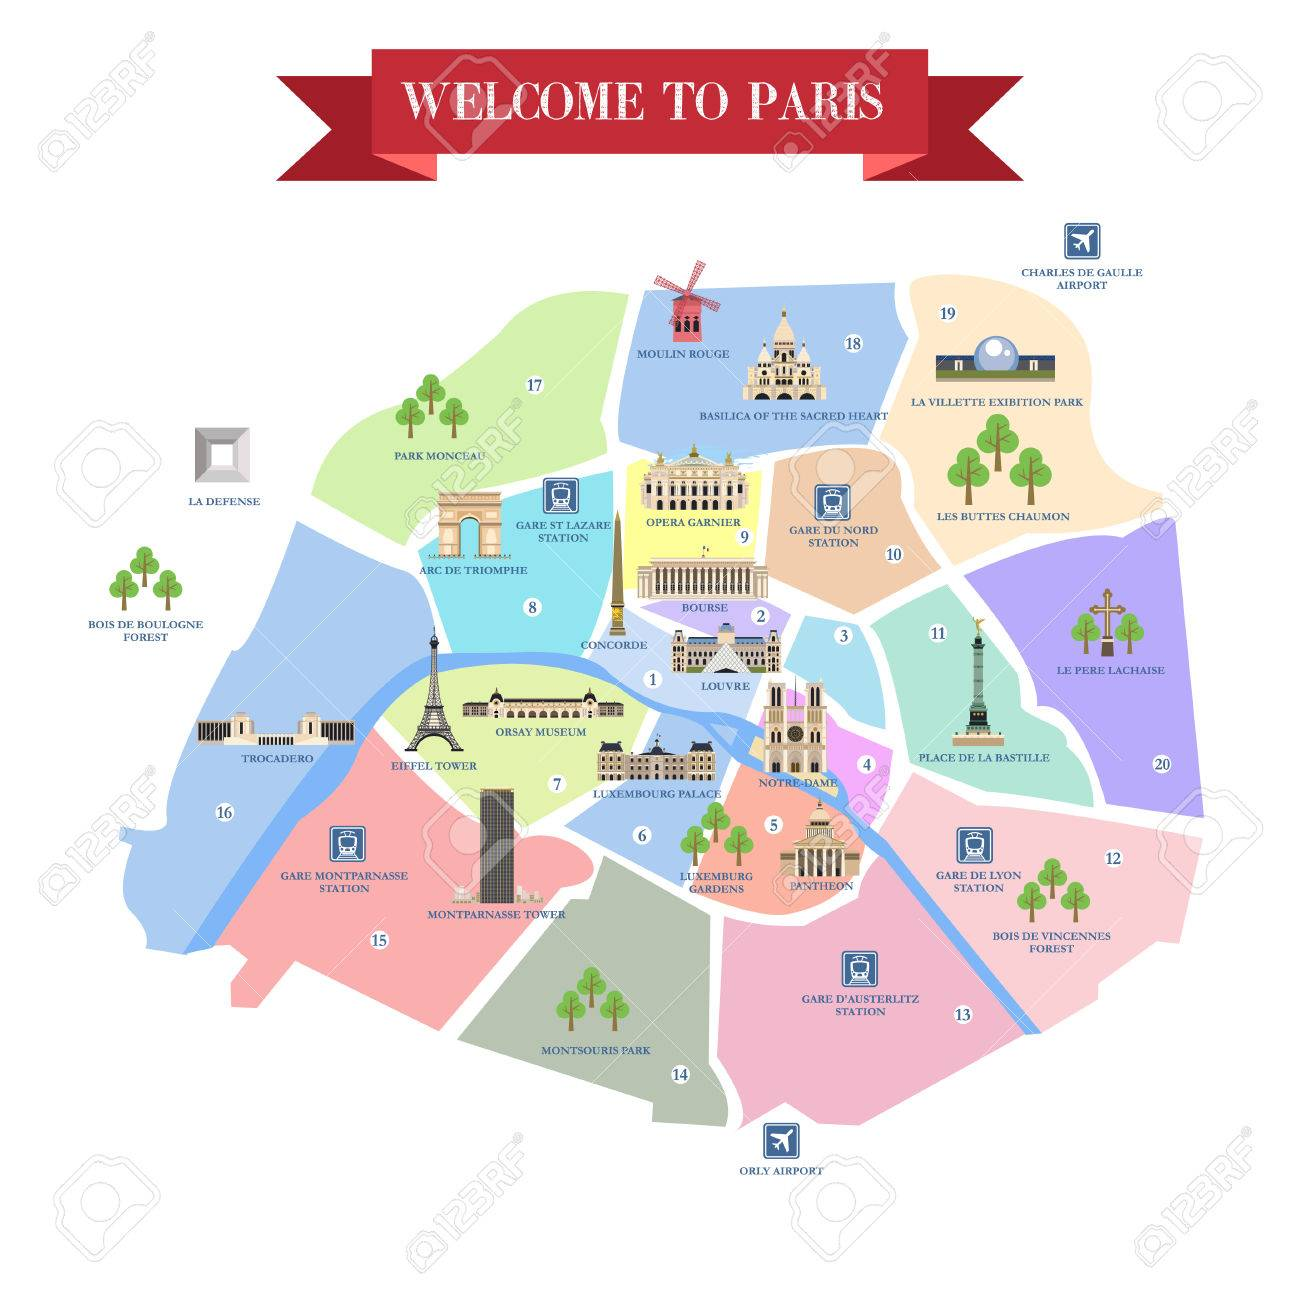 detailed map of paris famous landmarks cathedrals museums palaces parks